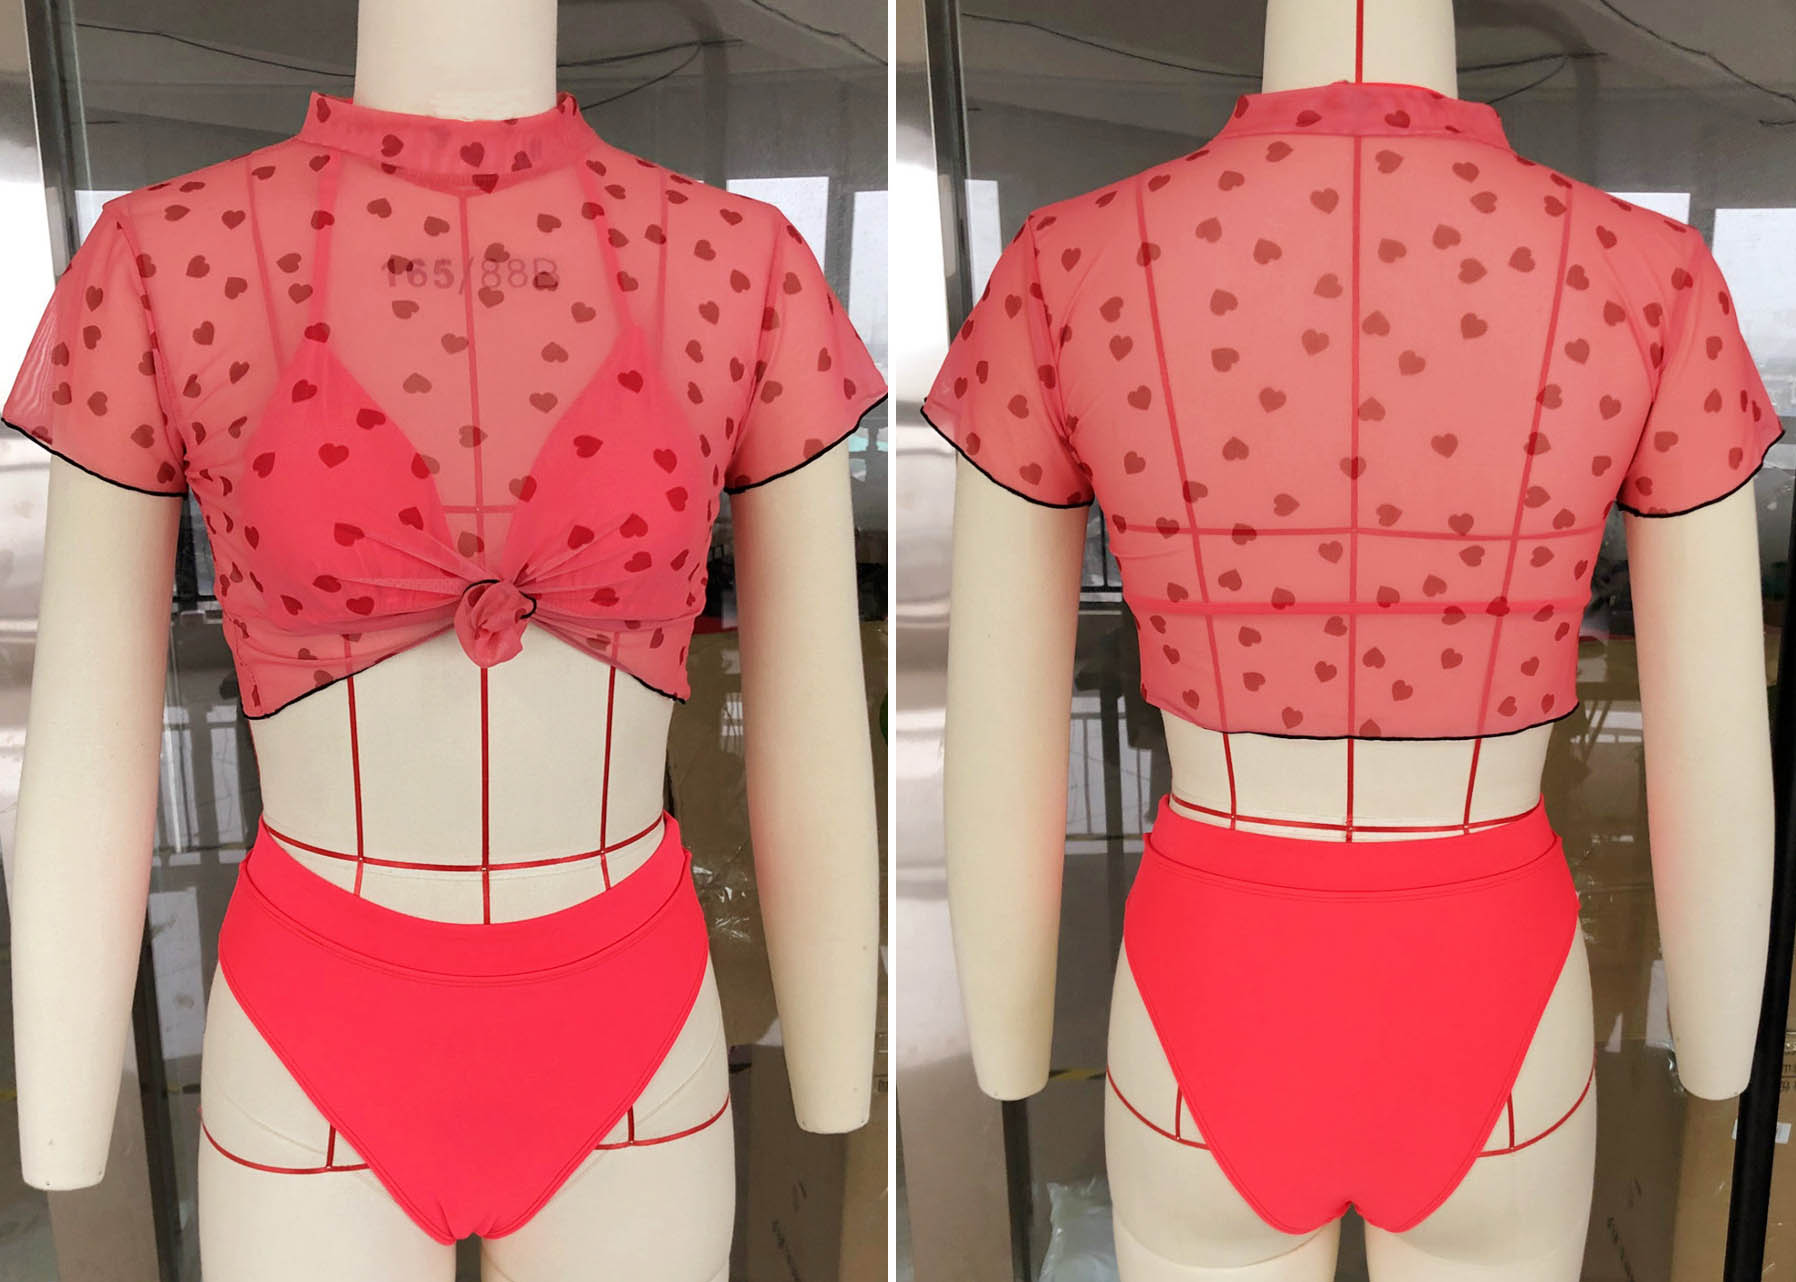 How the red cap sleeve two piece bathing suit looks like on a mannequin